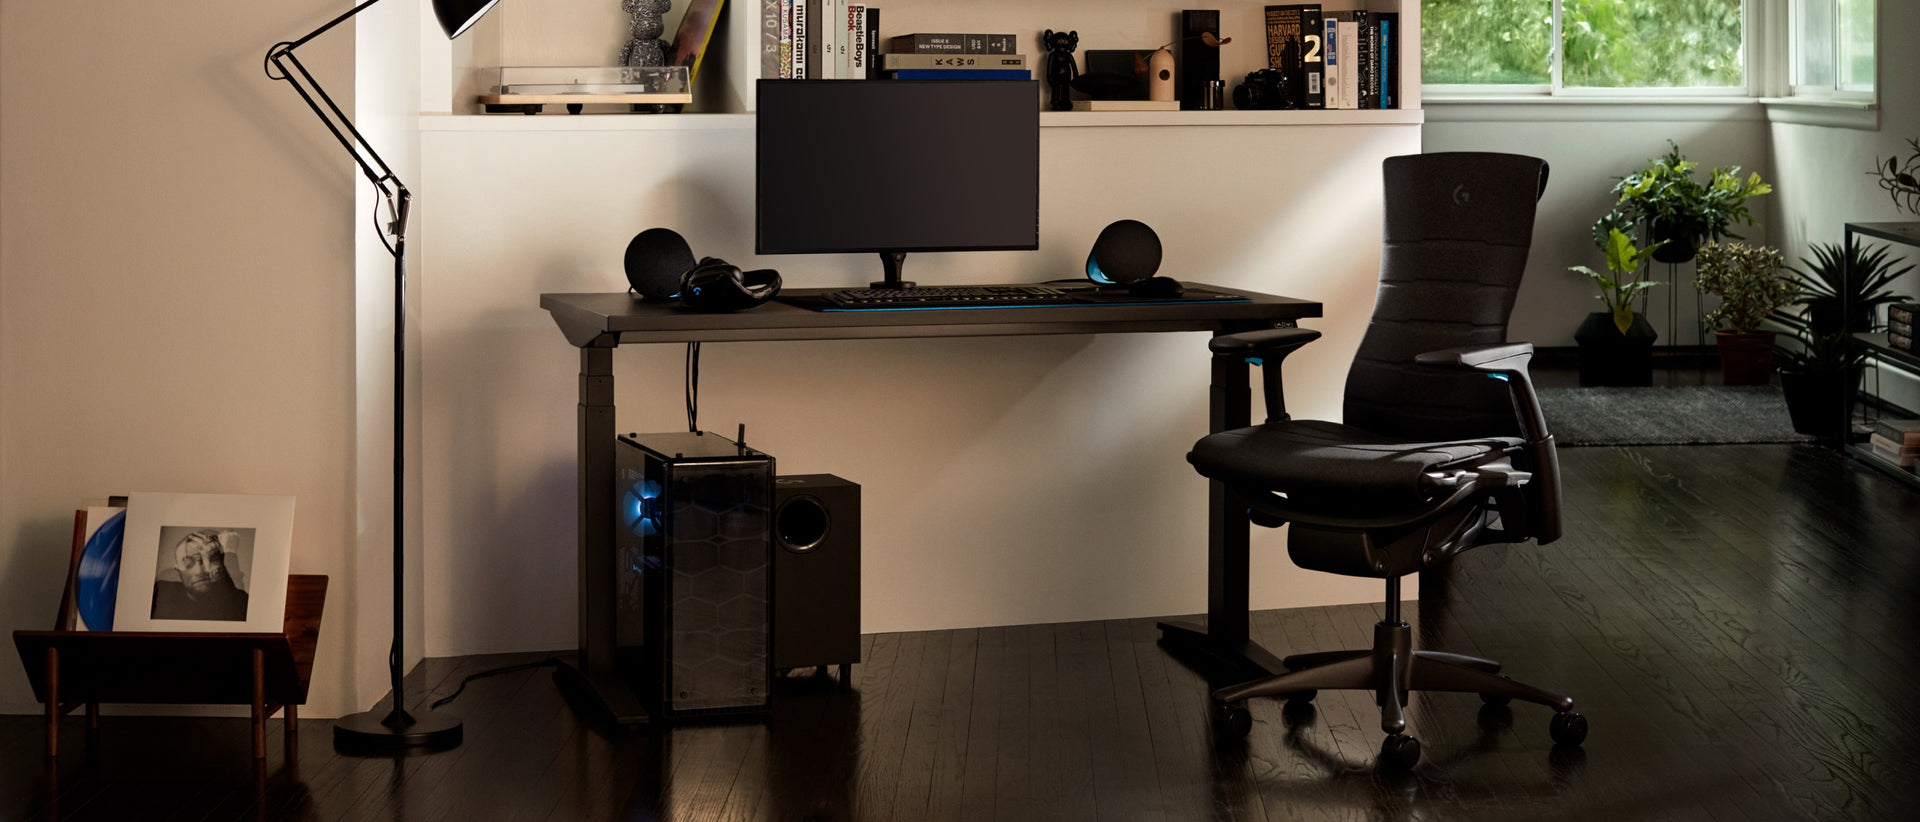 밤에 Embody Gaming Chair, Ollin Monitor Arm 및 Ratio Gaming Desk를 포함한, 전체 구성을 갖춘 주거 환경.